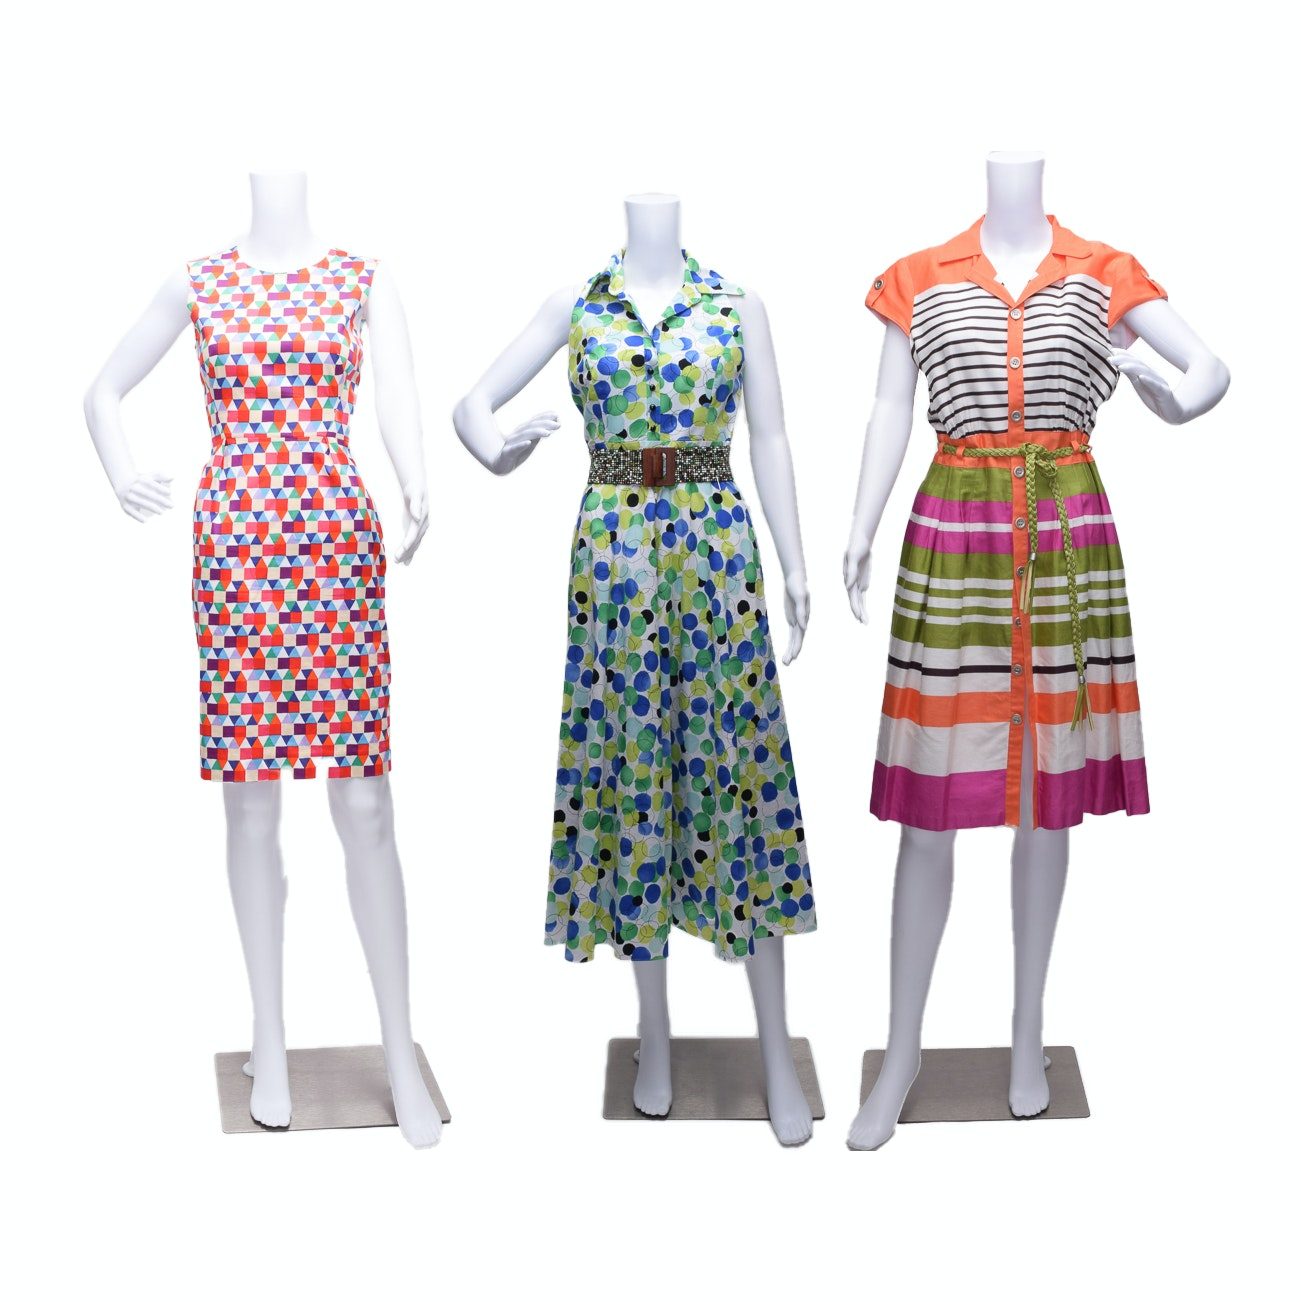 Summer Dresses Including Talbots and Leslie Fay